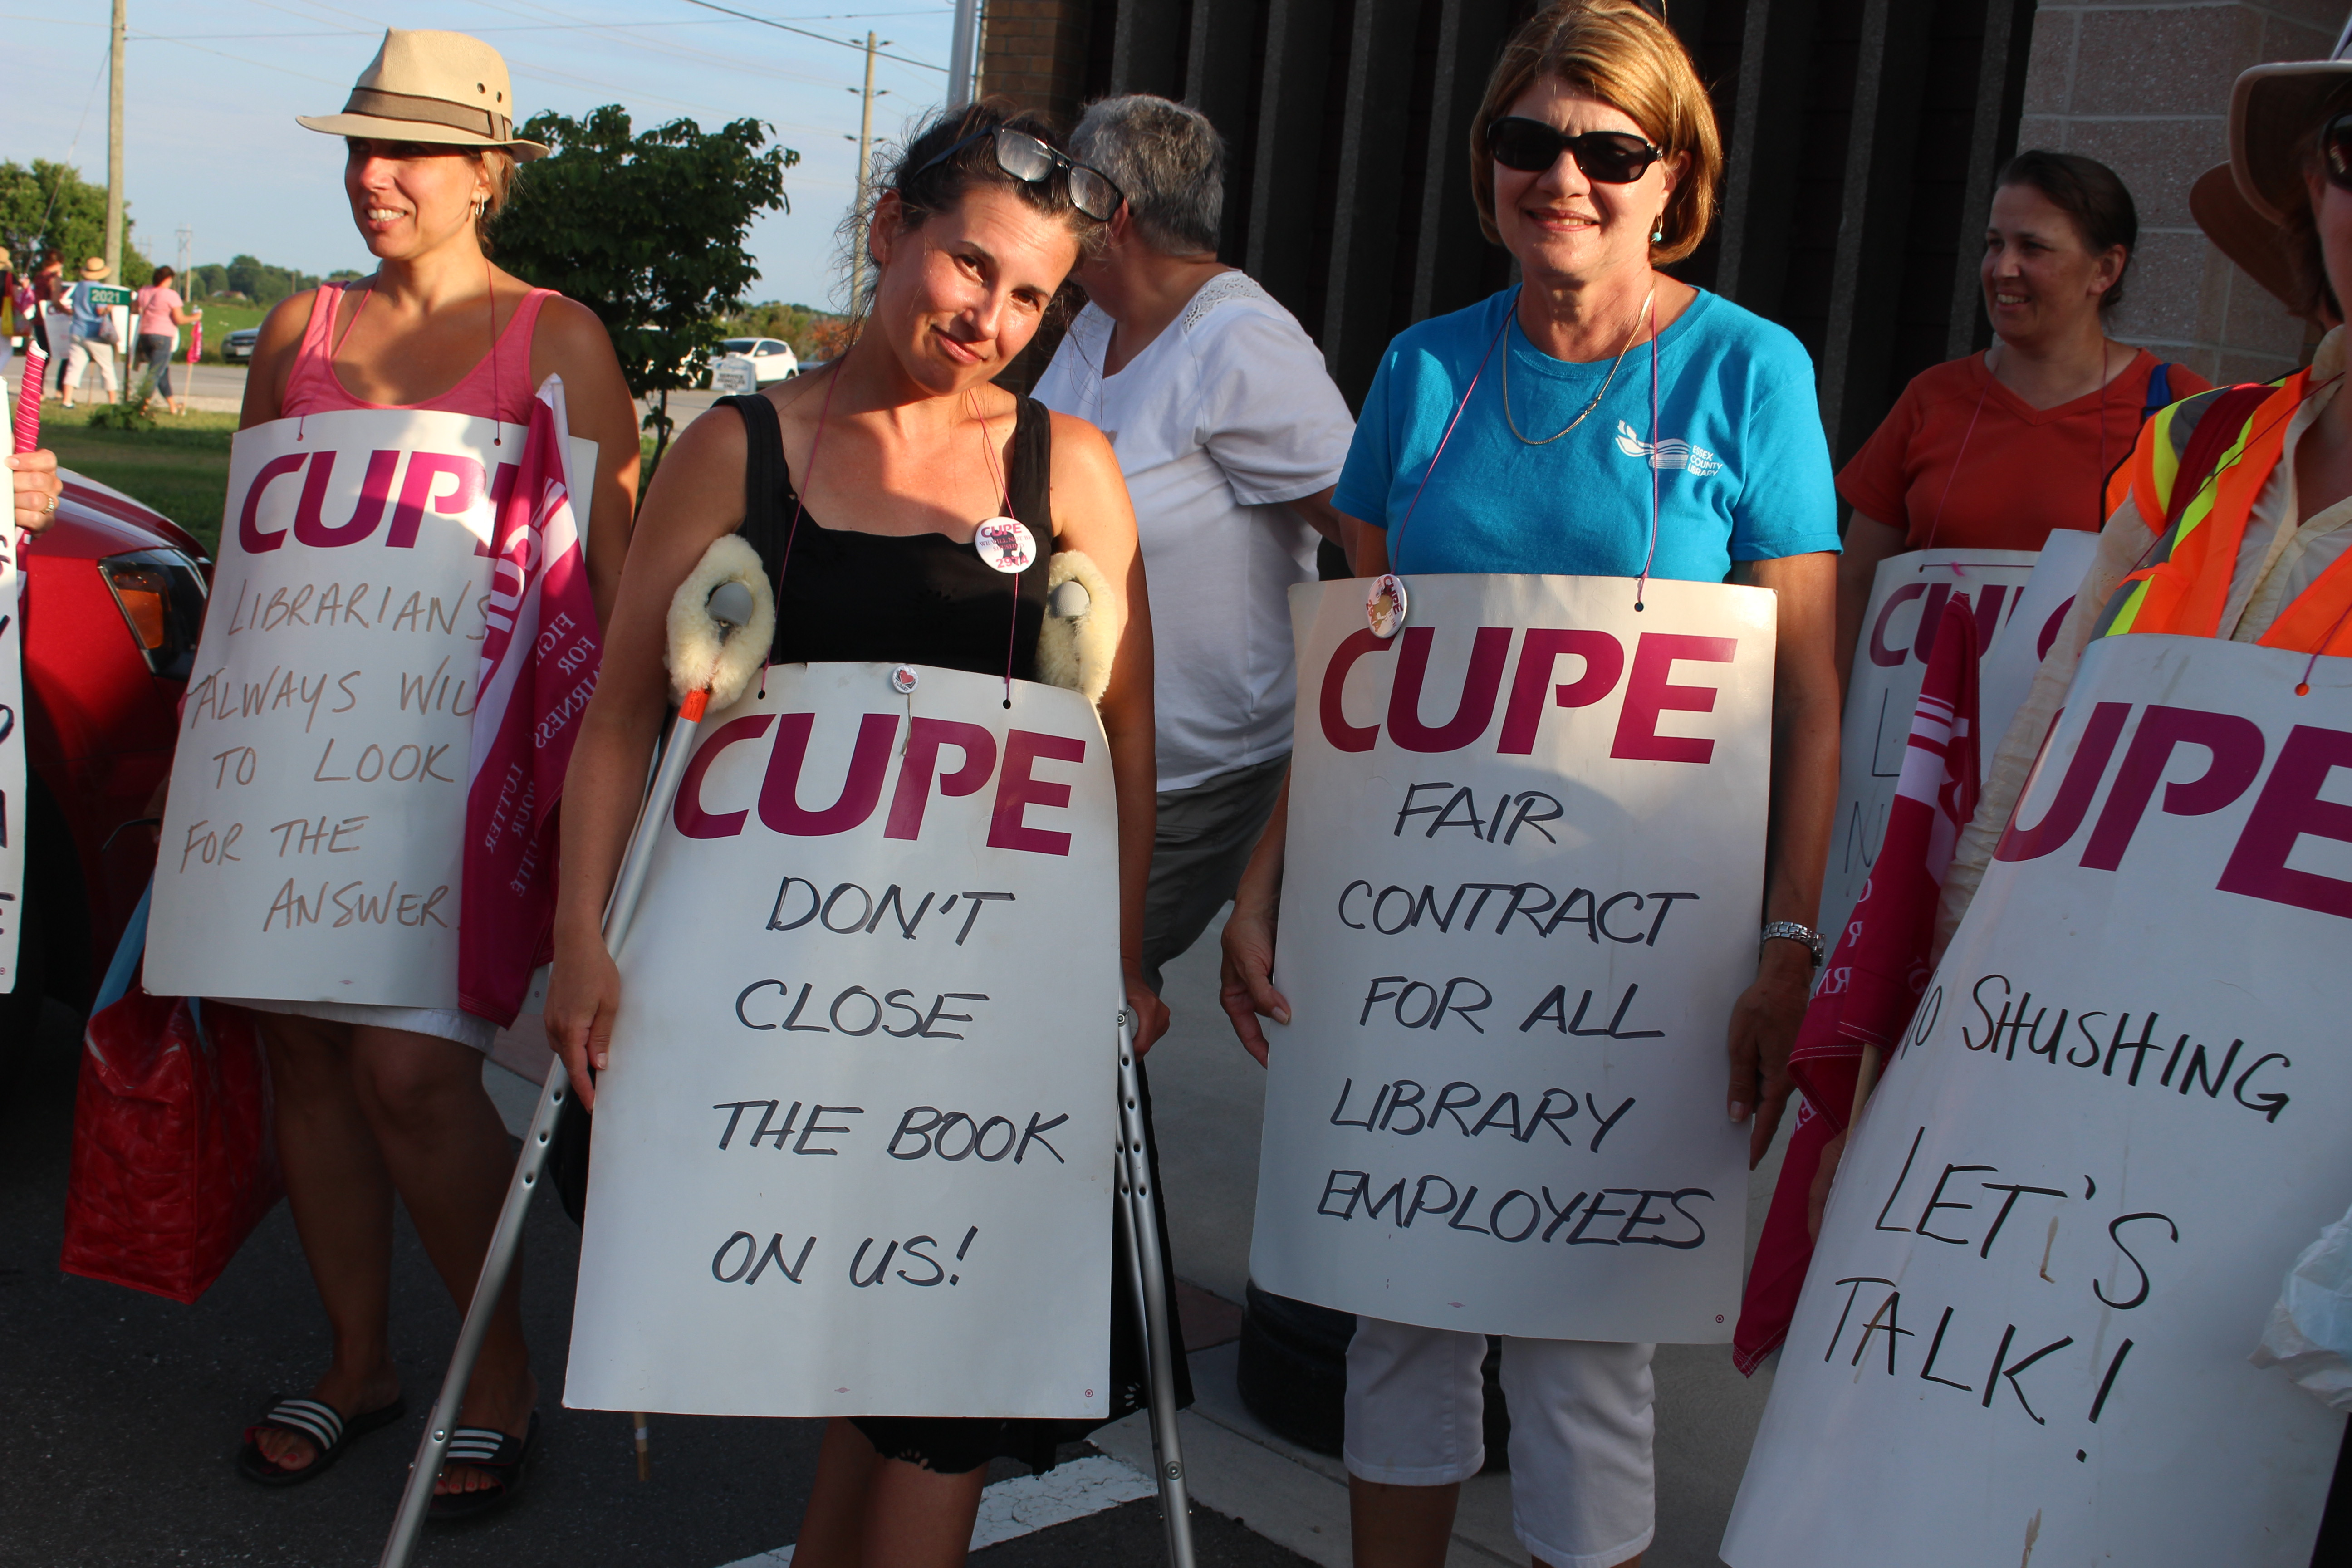 CUPE members stand outside of Kingsville's town hall on July 11, 2016. (Photo by Ricardo Veneza)